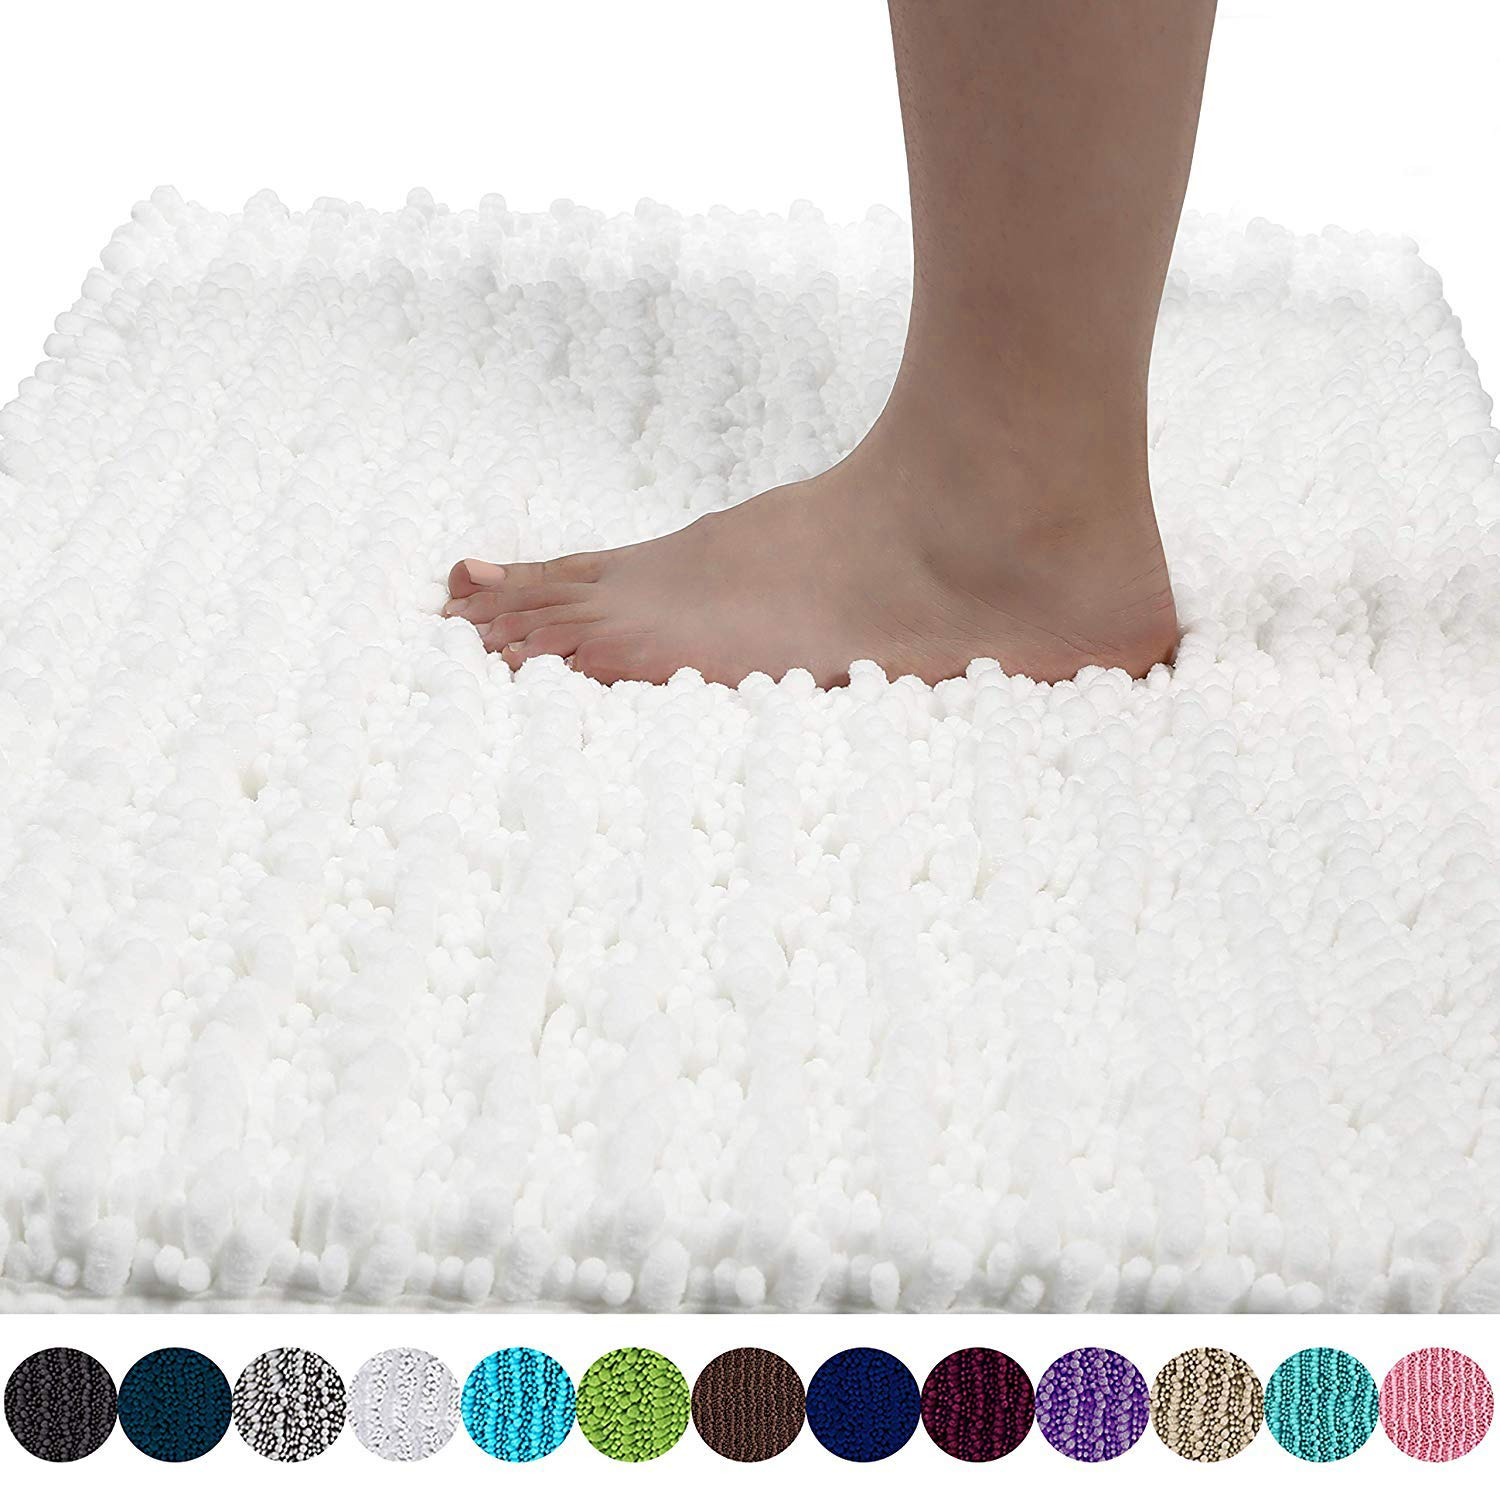 Yimobra Original Luxury Chenille Bath Mat, Soft Shaggy and Comfortable, Large Size, Super Absorbent and Thick, Non-Slip, Machine Washable, Perfect for Bathroom (31.5 X 19.8 Inches, Bright White)